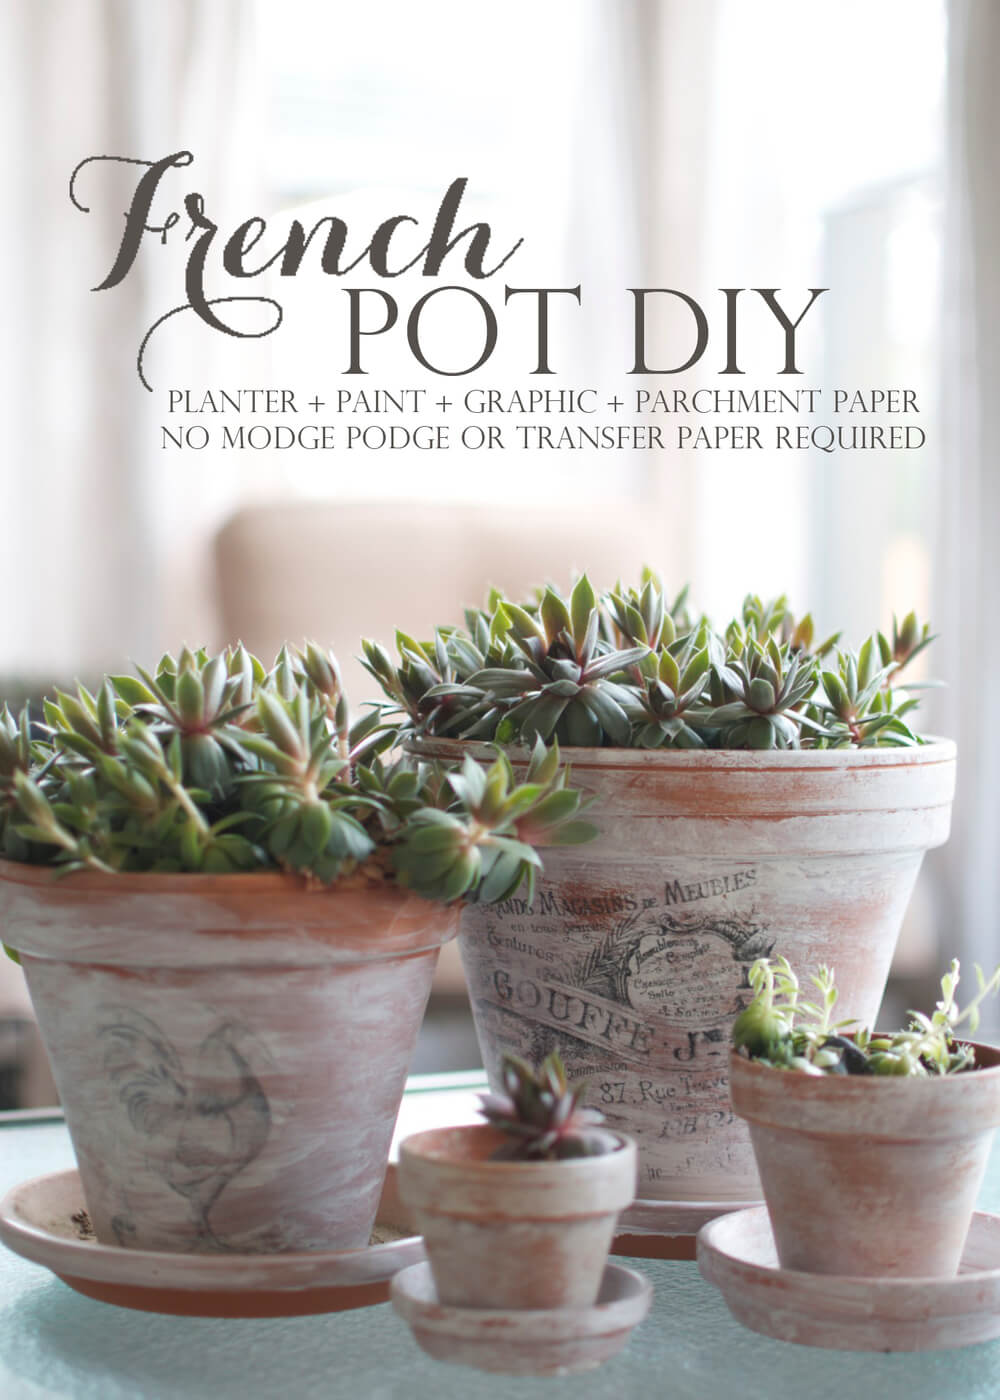 35 Best French Country Design And Decor Ideas For 2017